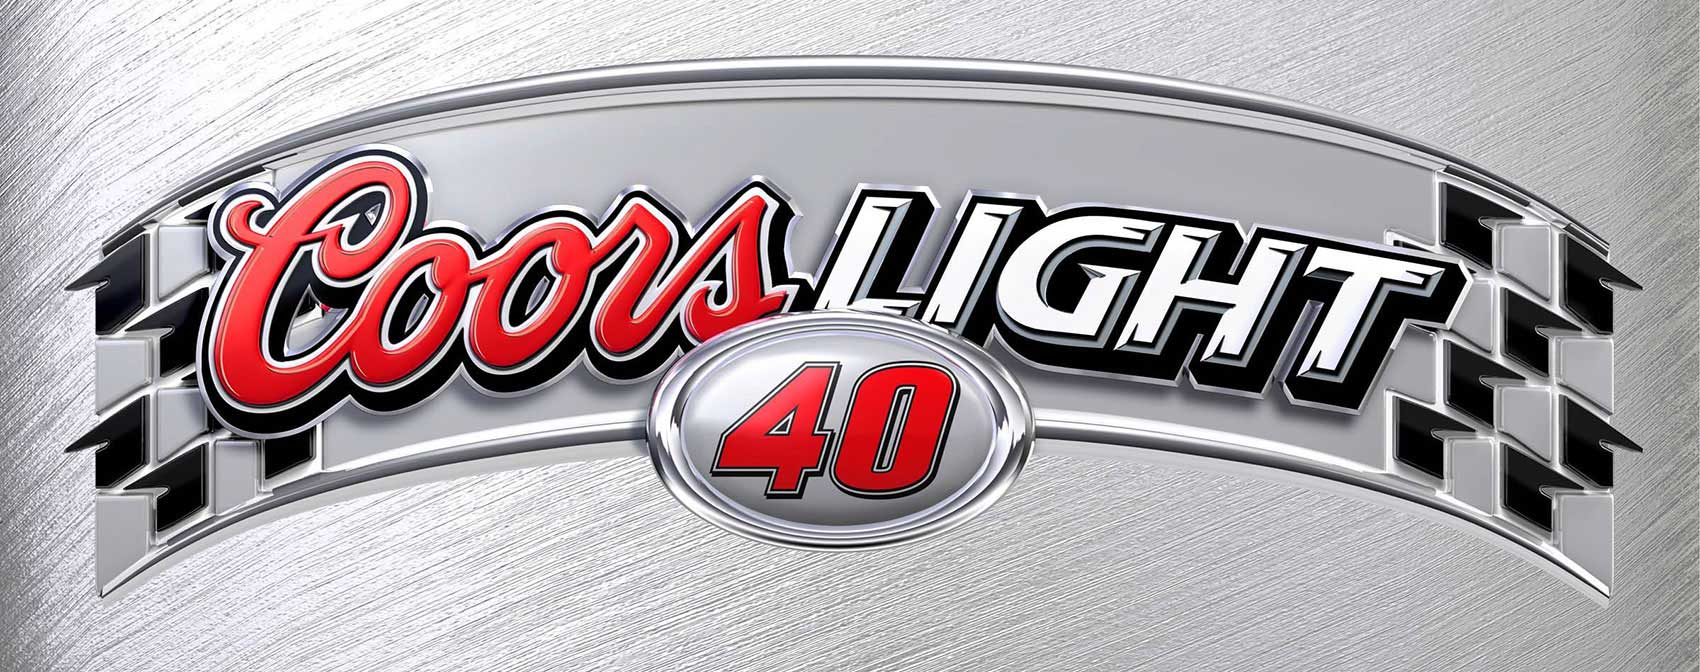 cgi-illustration-Still-Life products Coors-Light-brushed-chrome-nascar-logo